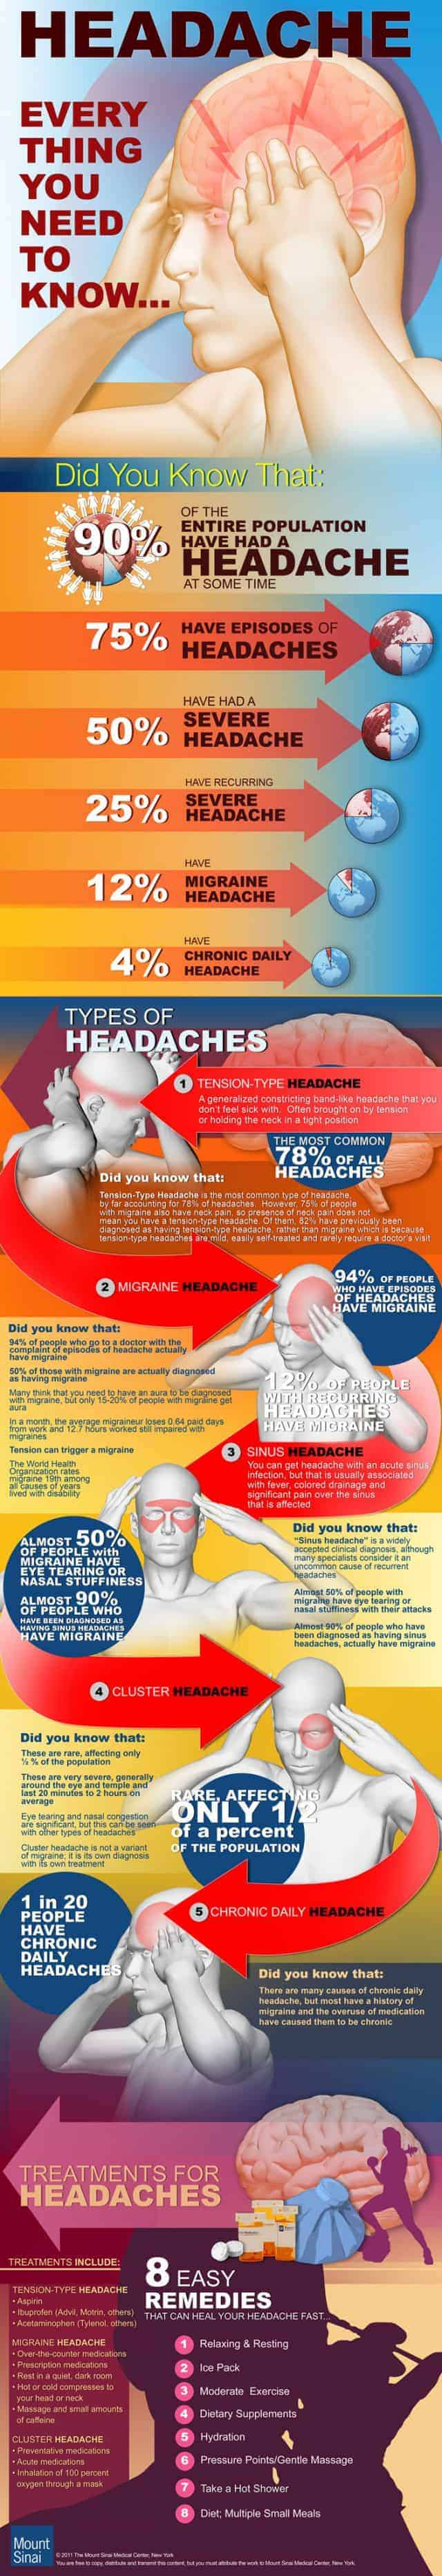 Every Thing You Need To Know Headache